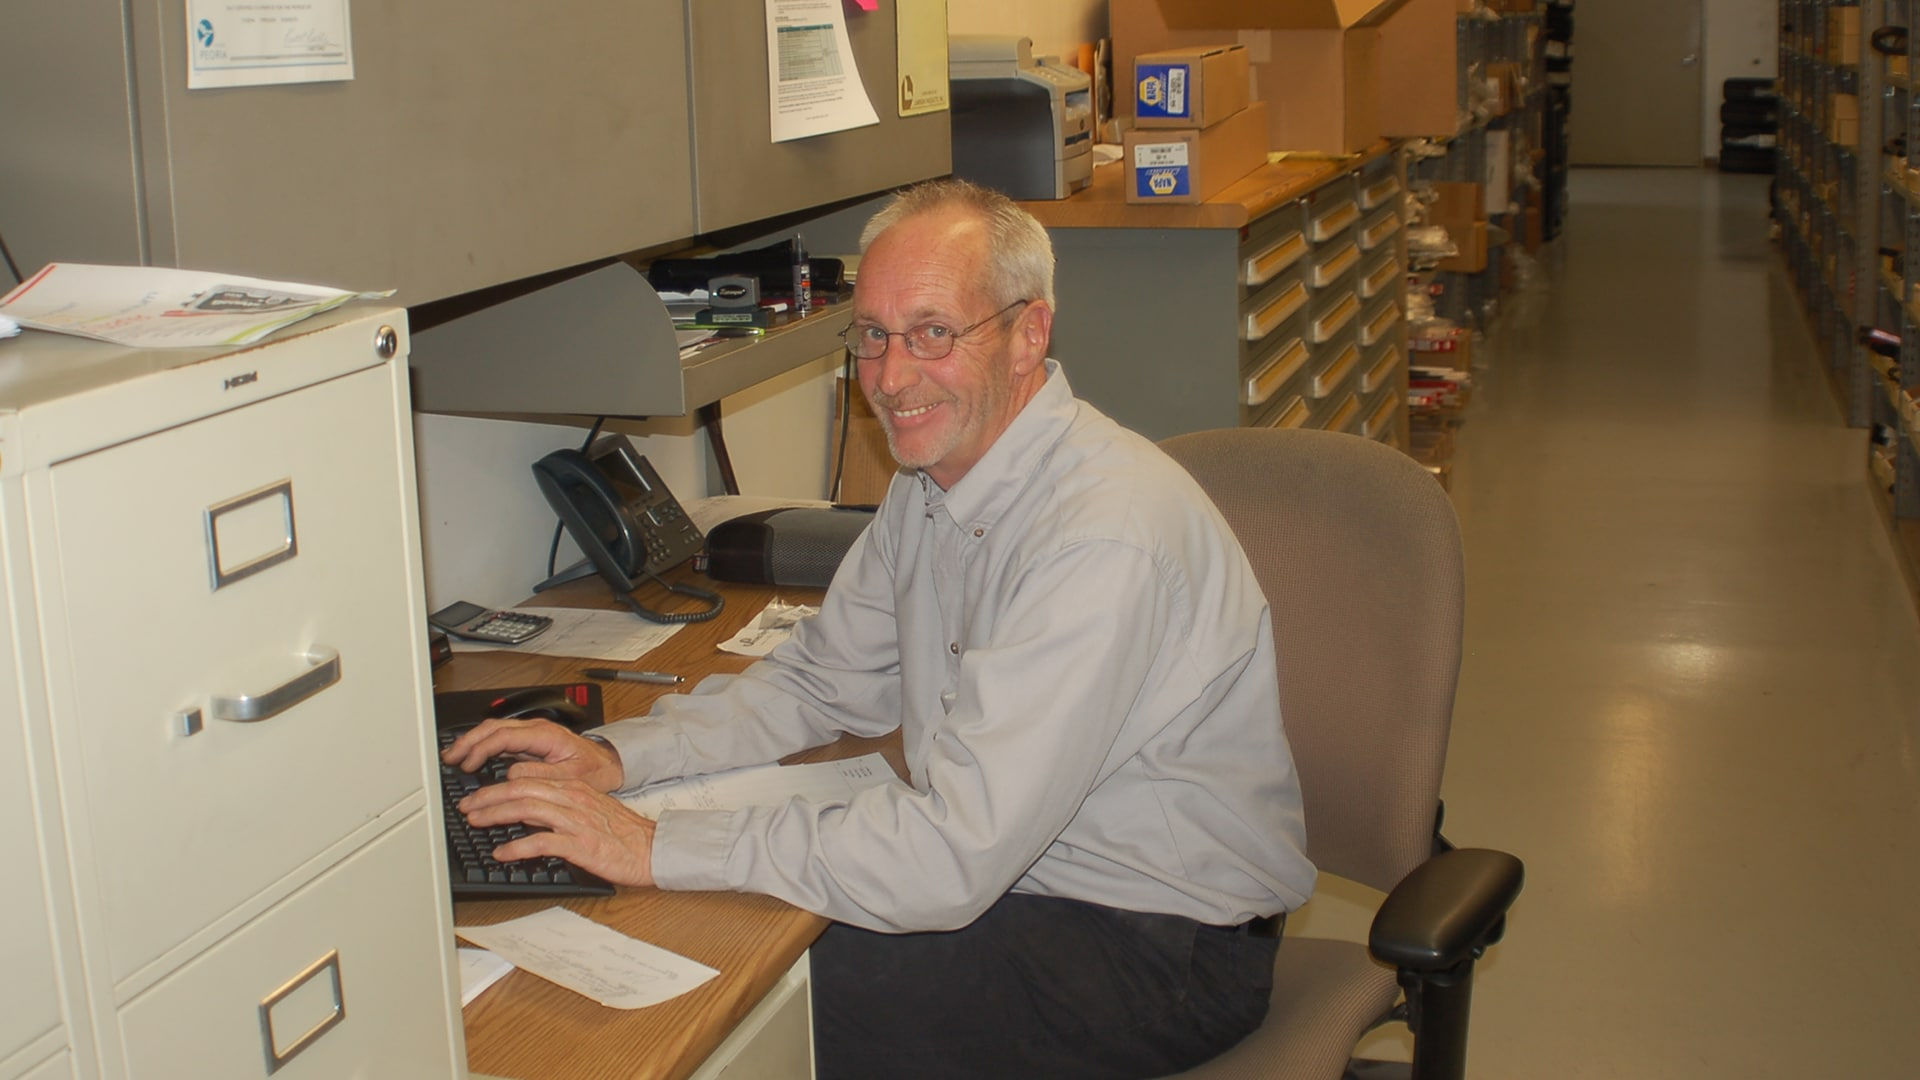 Photo Of Steve Gibson, Toyota Service Department In Peoria, IL - Peoria Toyota Scion